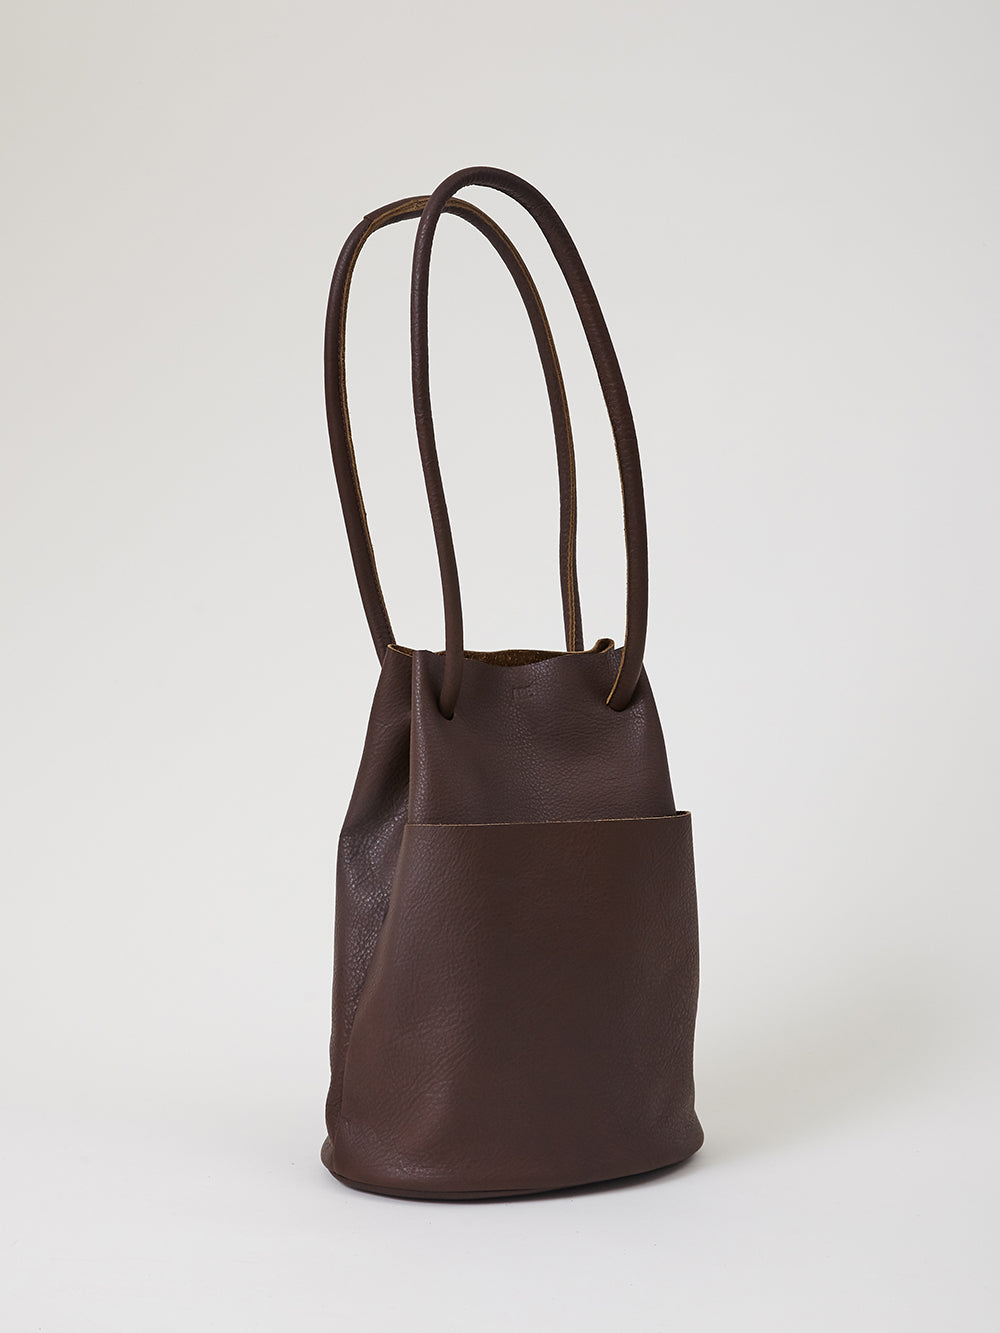 are studio tube bag in coffee